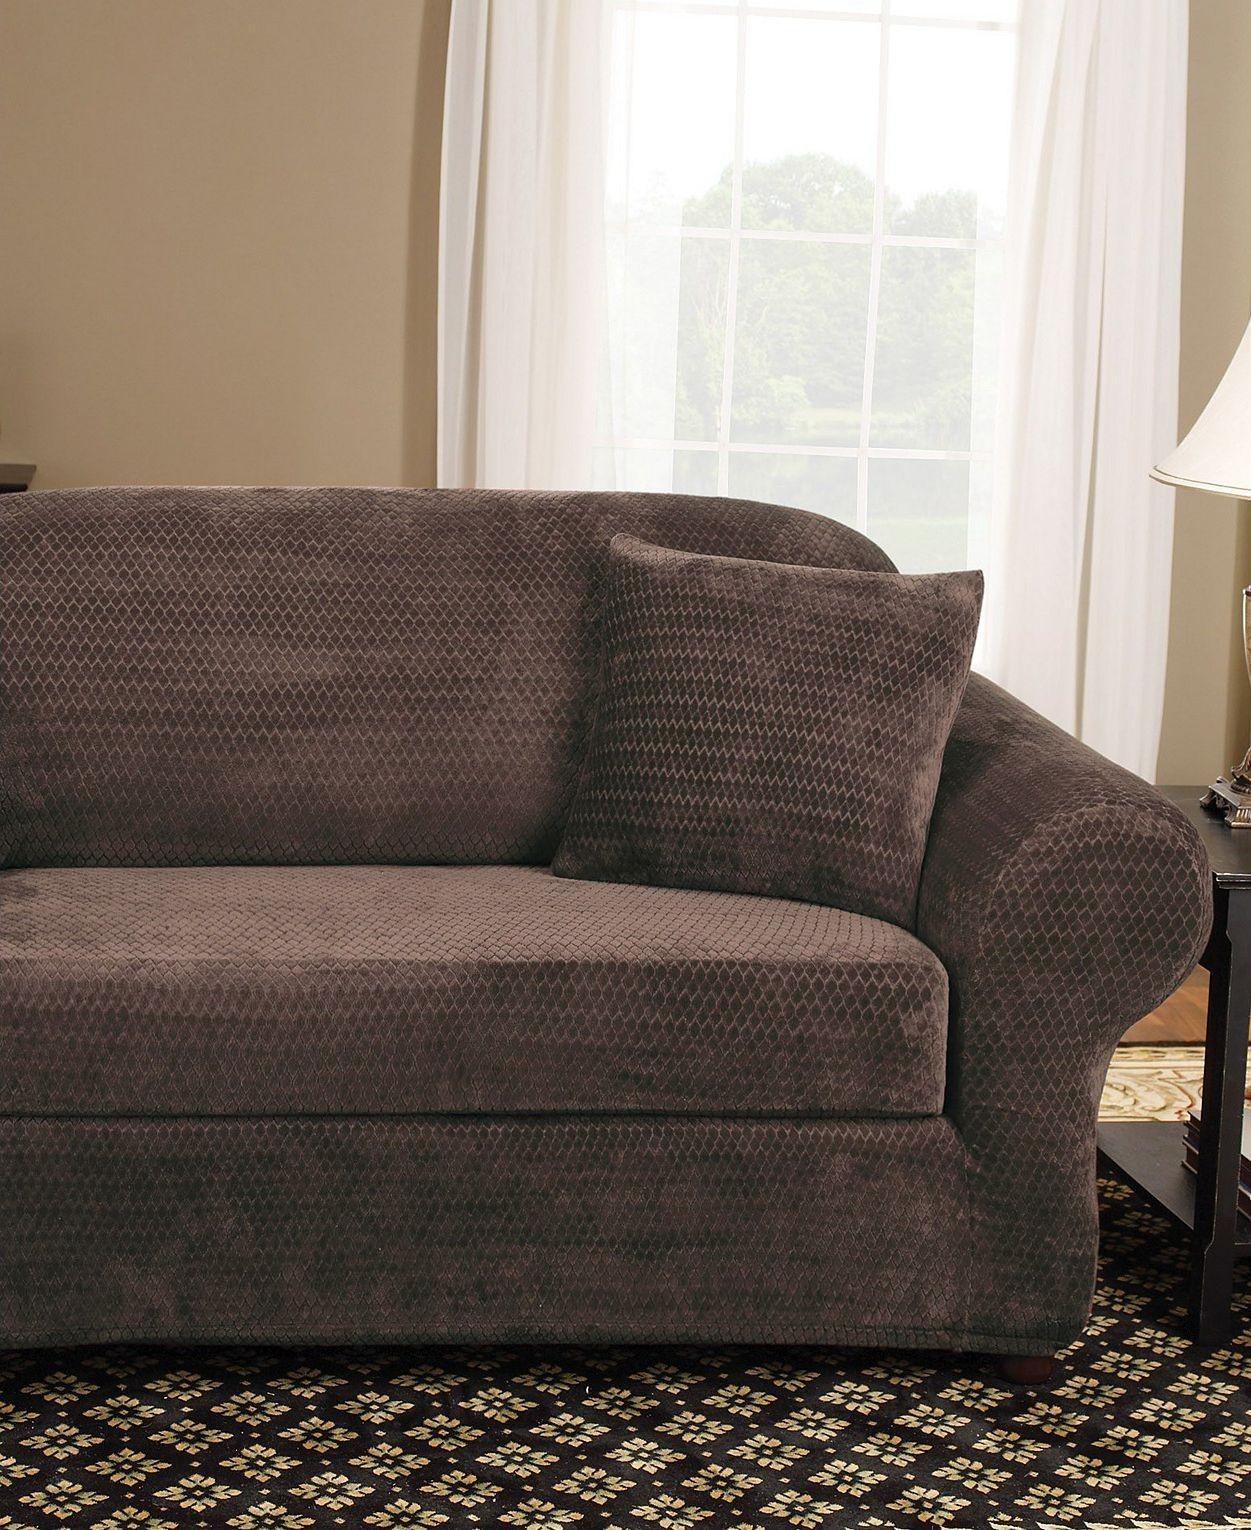 Sure Fit Stretch Suede 2 Piece Sofa Slipcover Chocolate Throughout 2 Piece Sofa Covers (Image 25 of 27)